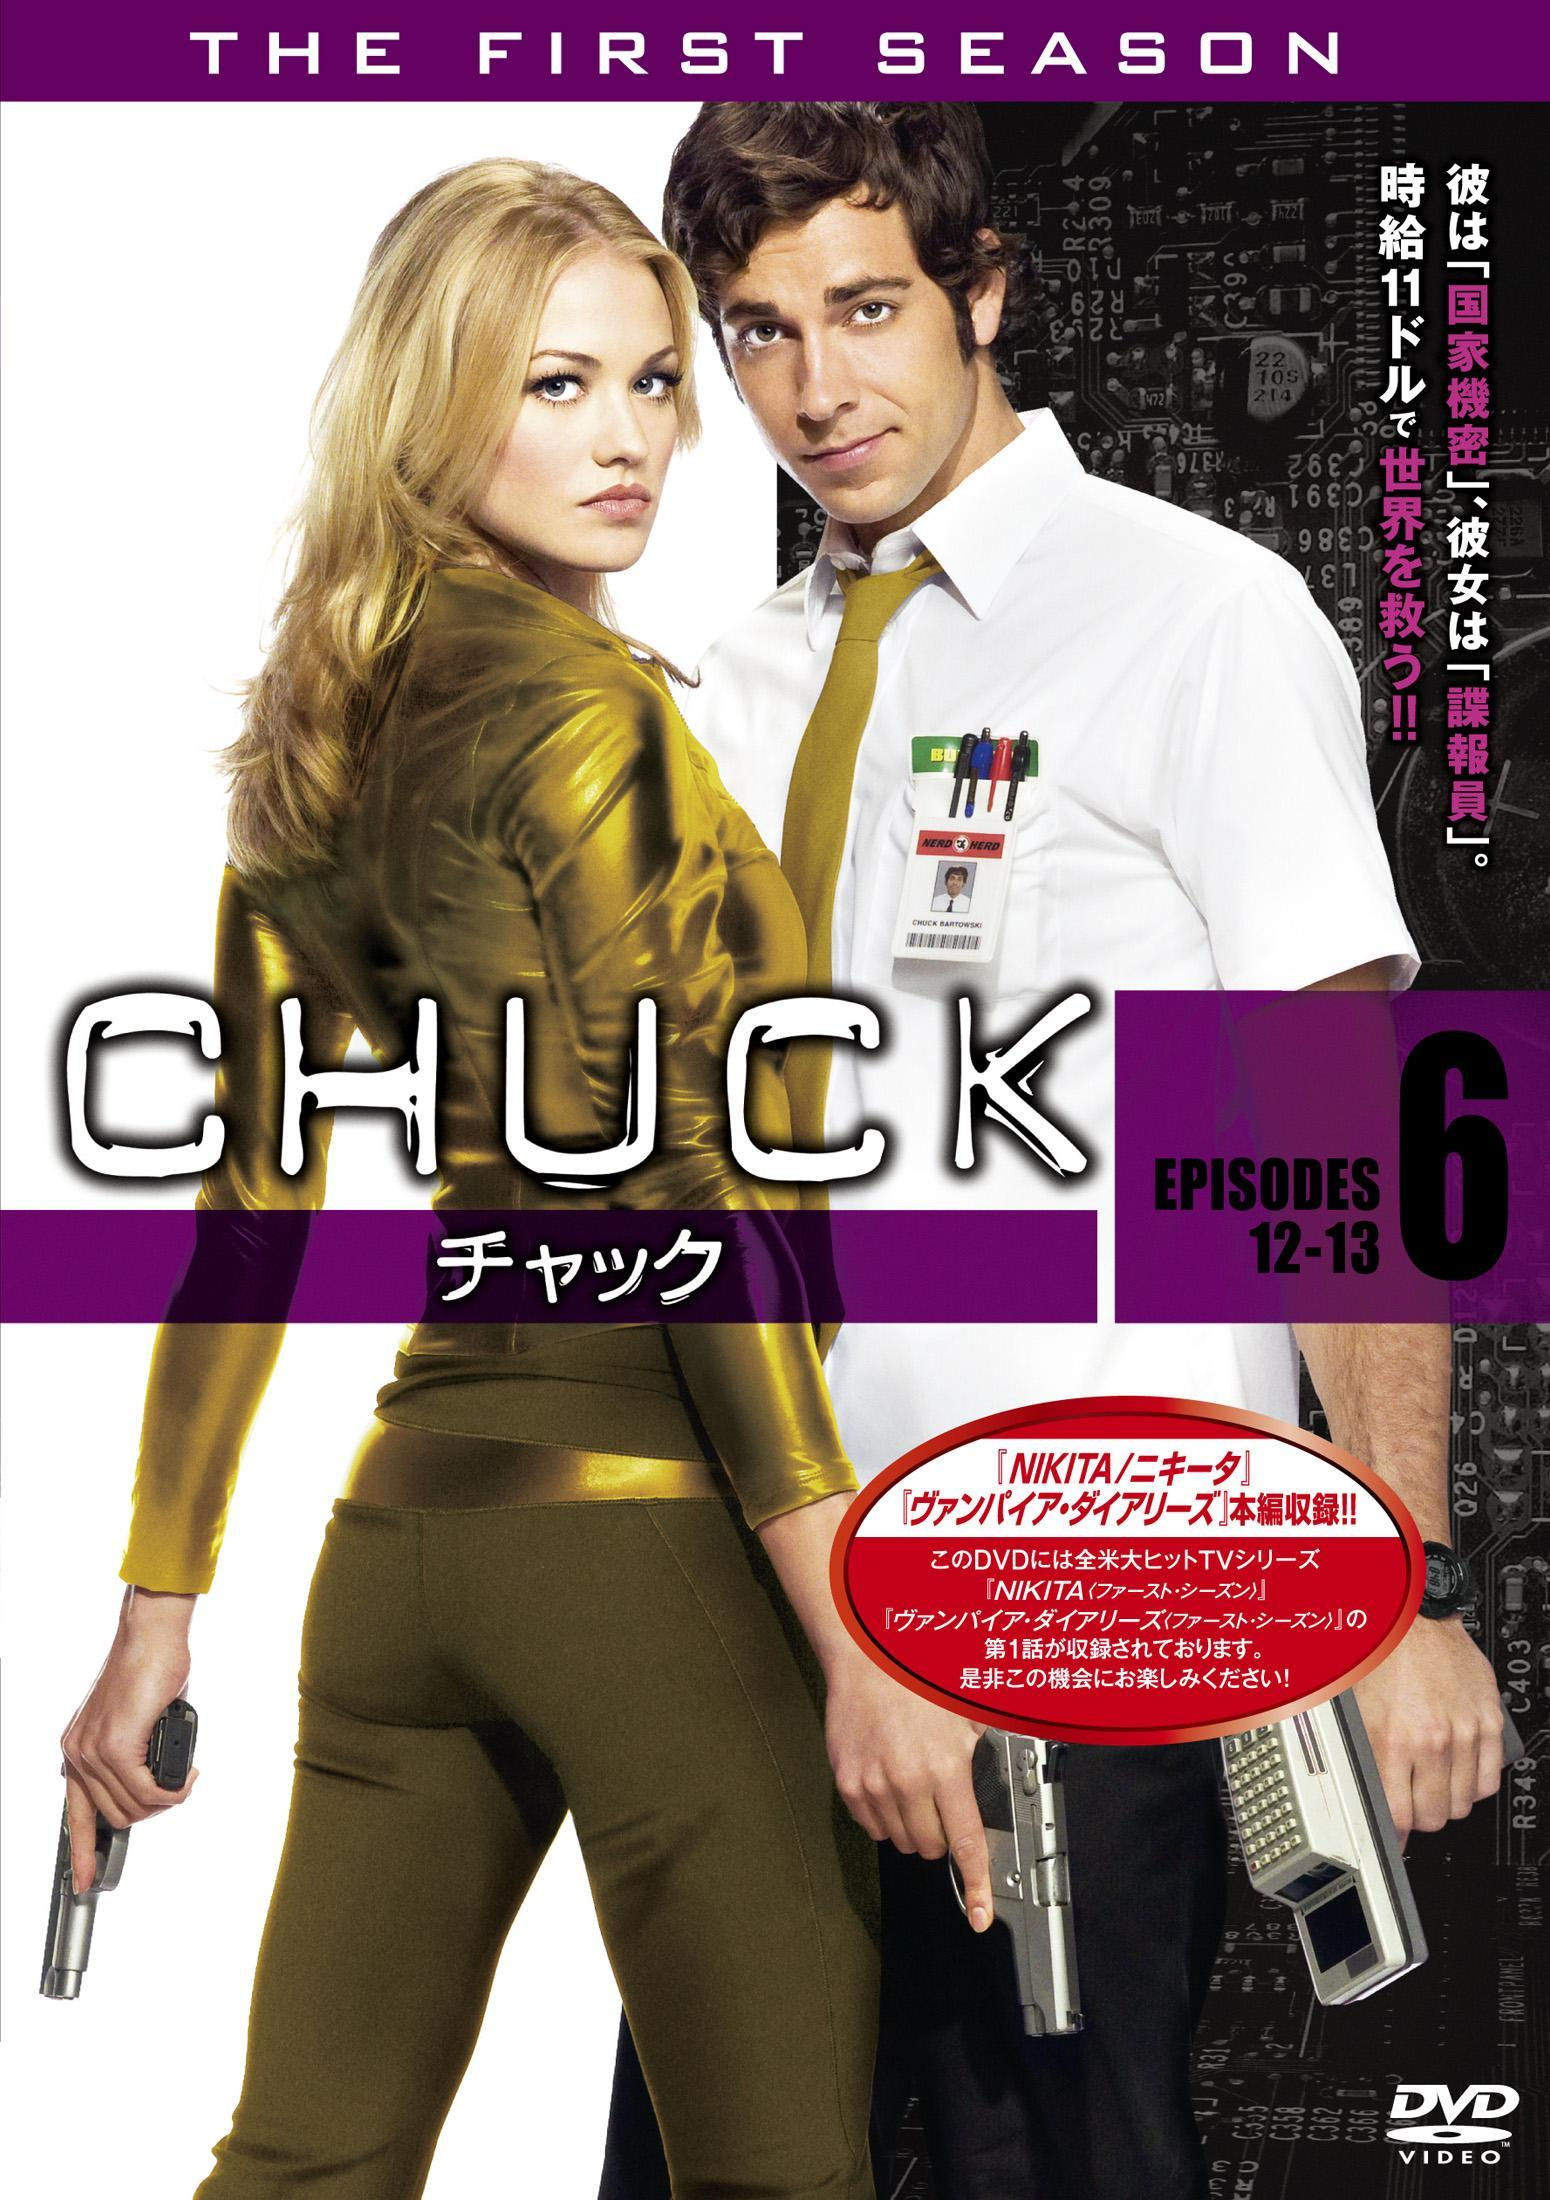 Chuck voltagebd Image collections